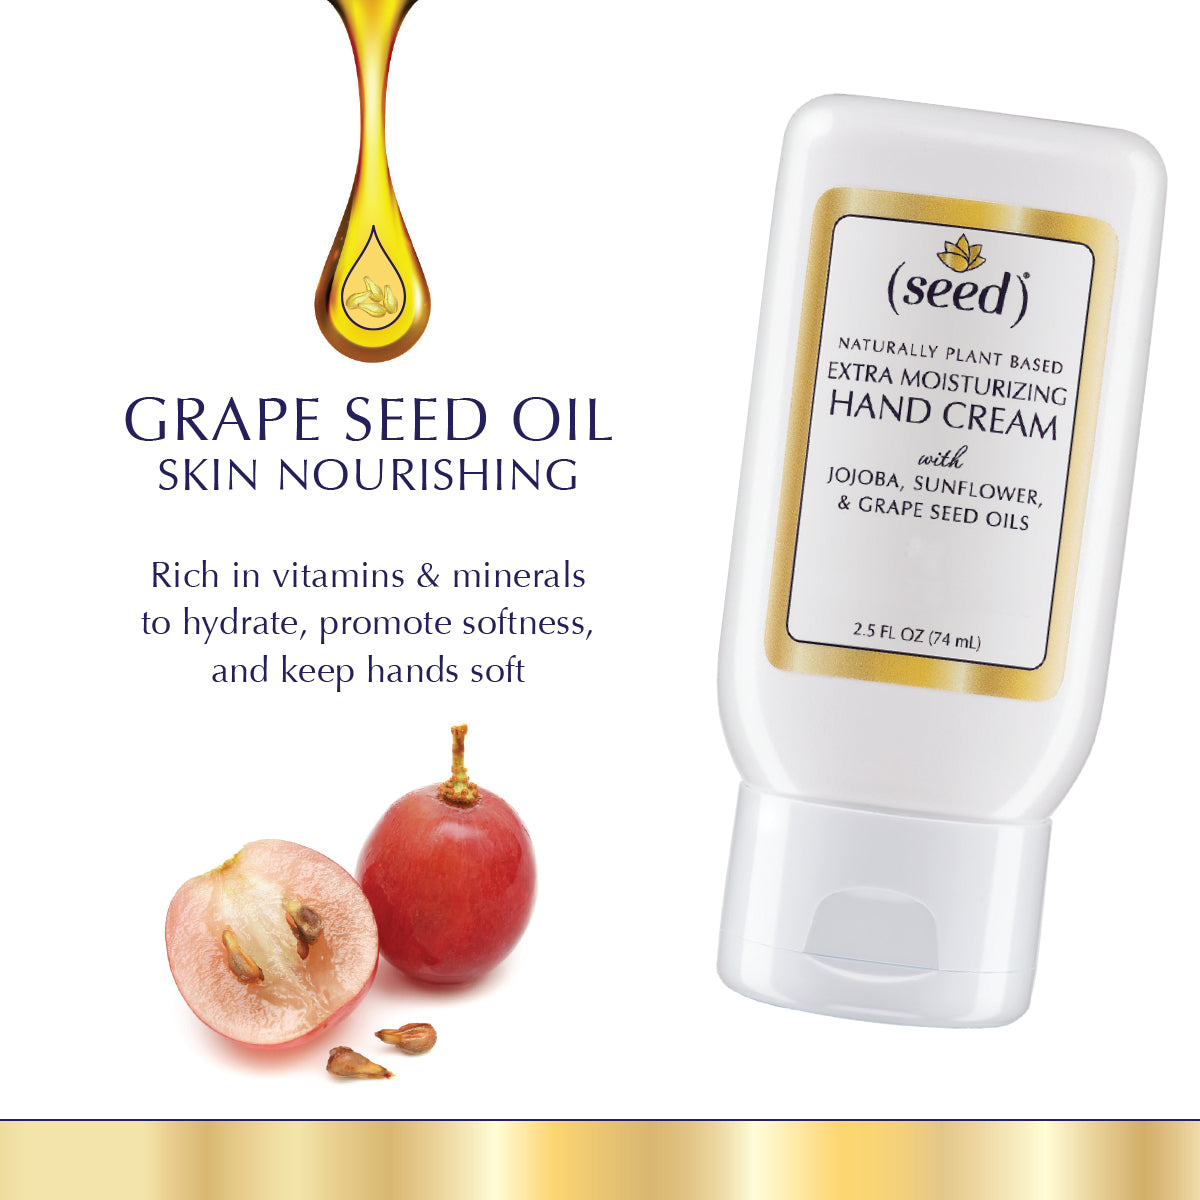 Seed Extra Moisturizing Hand Cream features grape seed oil